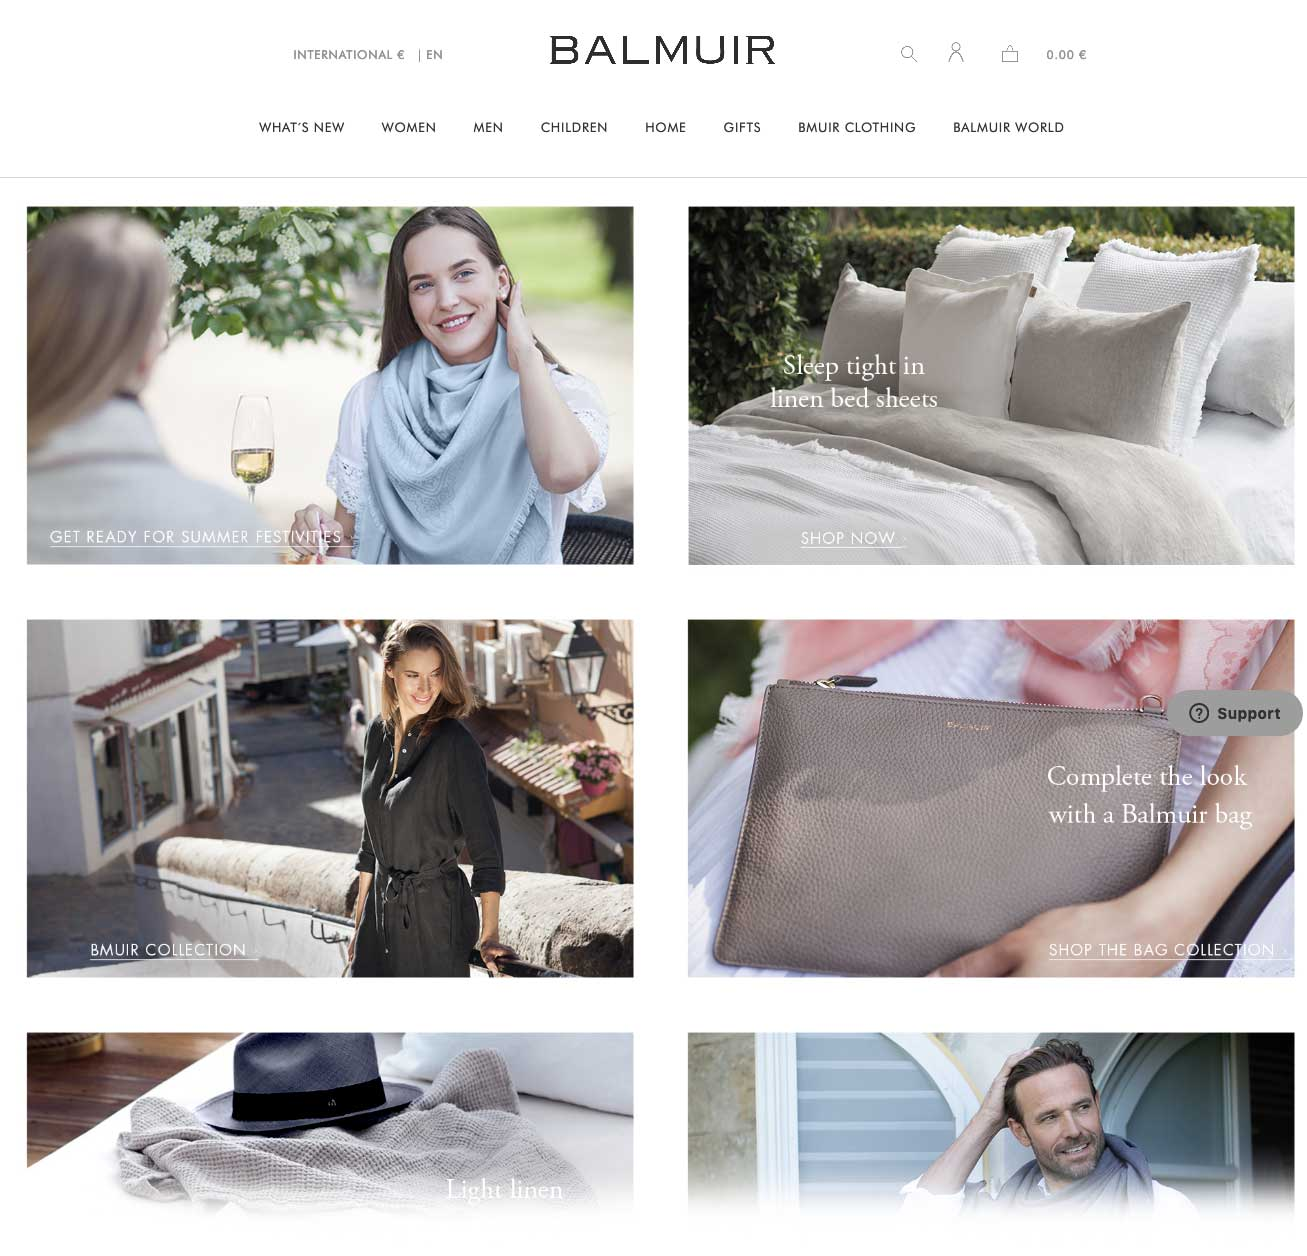 Balmuir is a lifestyle brand offering interior decoration items and fashion accessories made from the finest natural materials